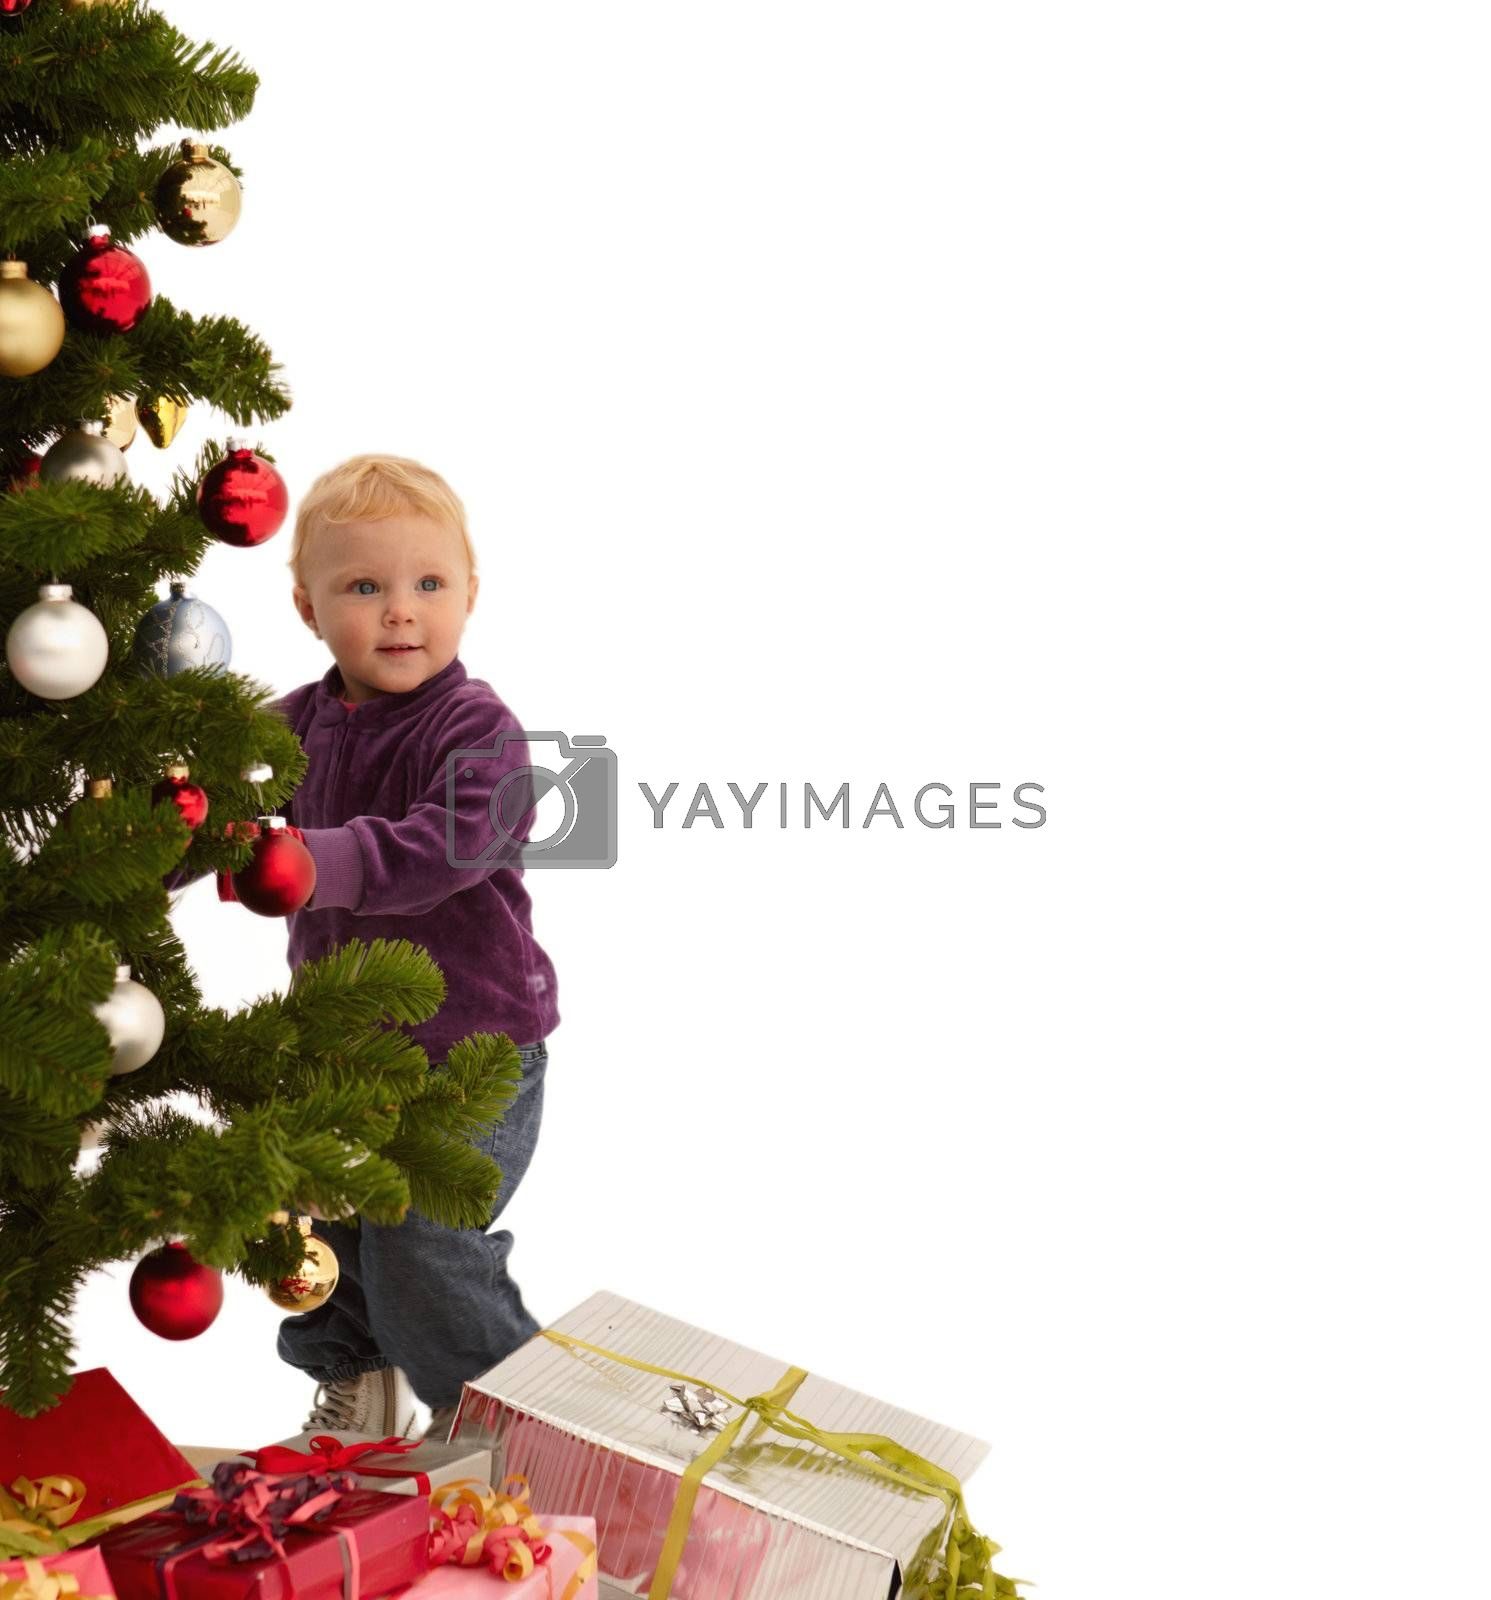 Royalty free image of Christmas - Child putting decorations on tree by FreedomImage